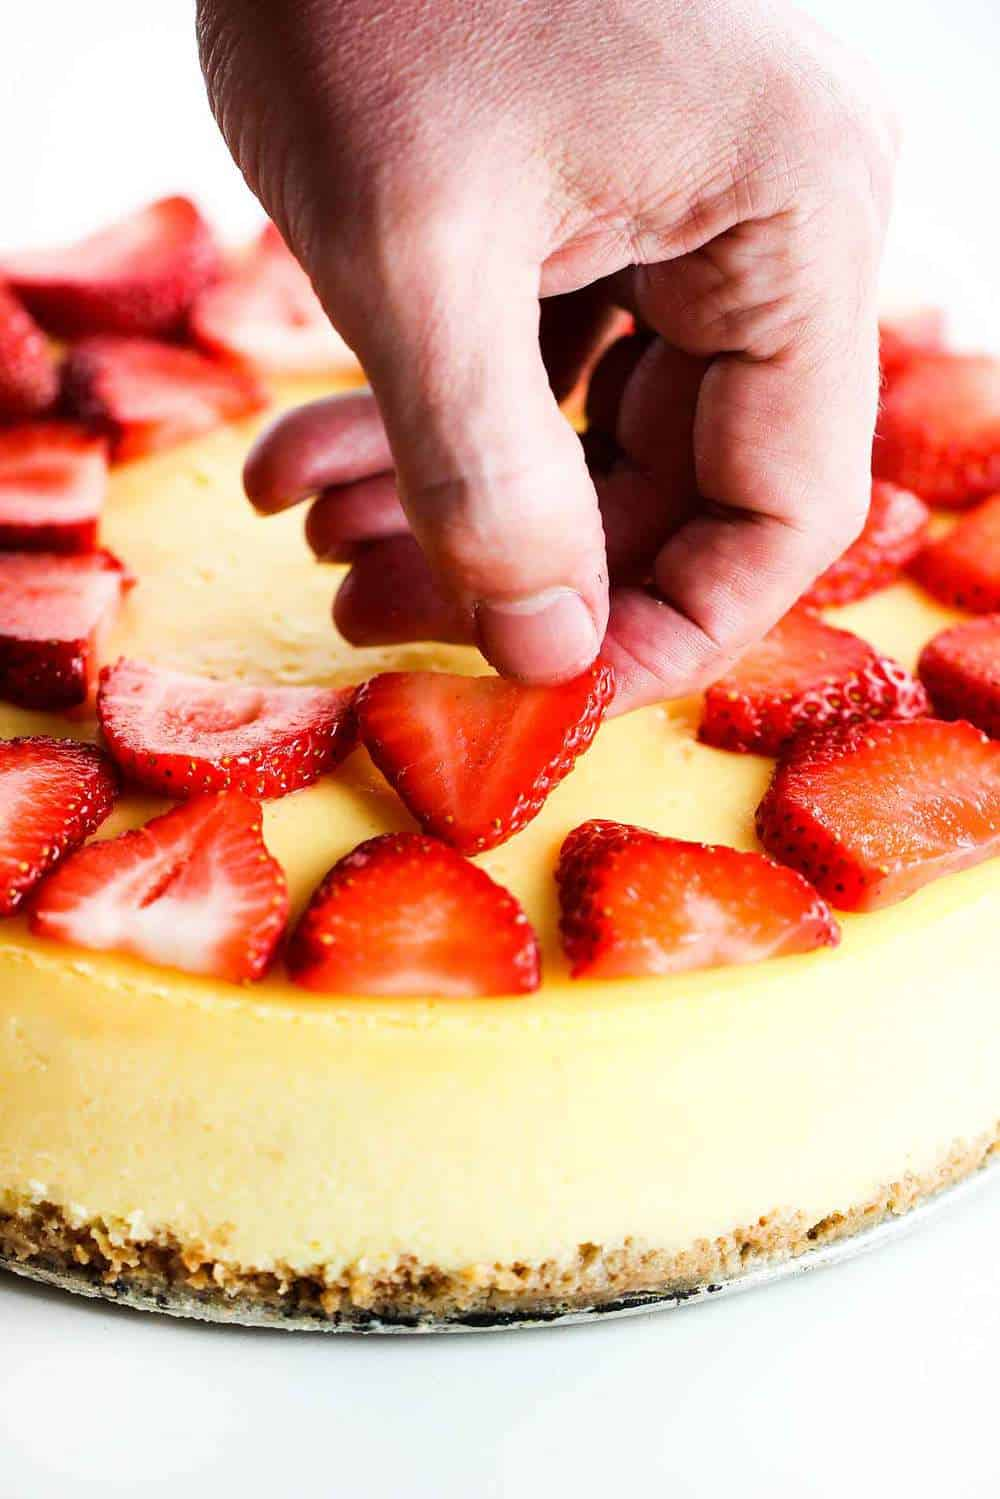 New York Cheese Cake with a hand placing fresh sliced strawberries on top.